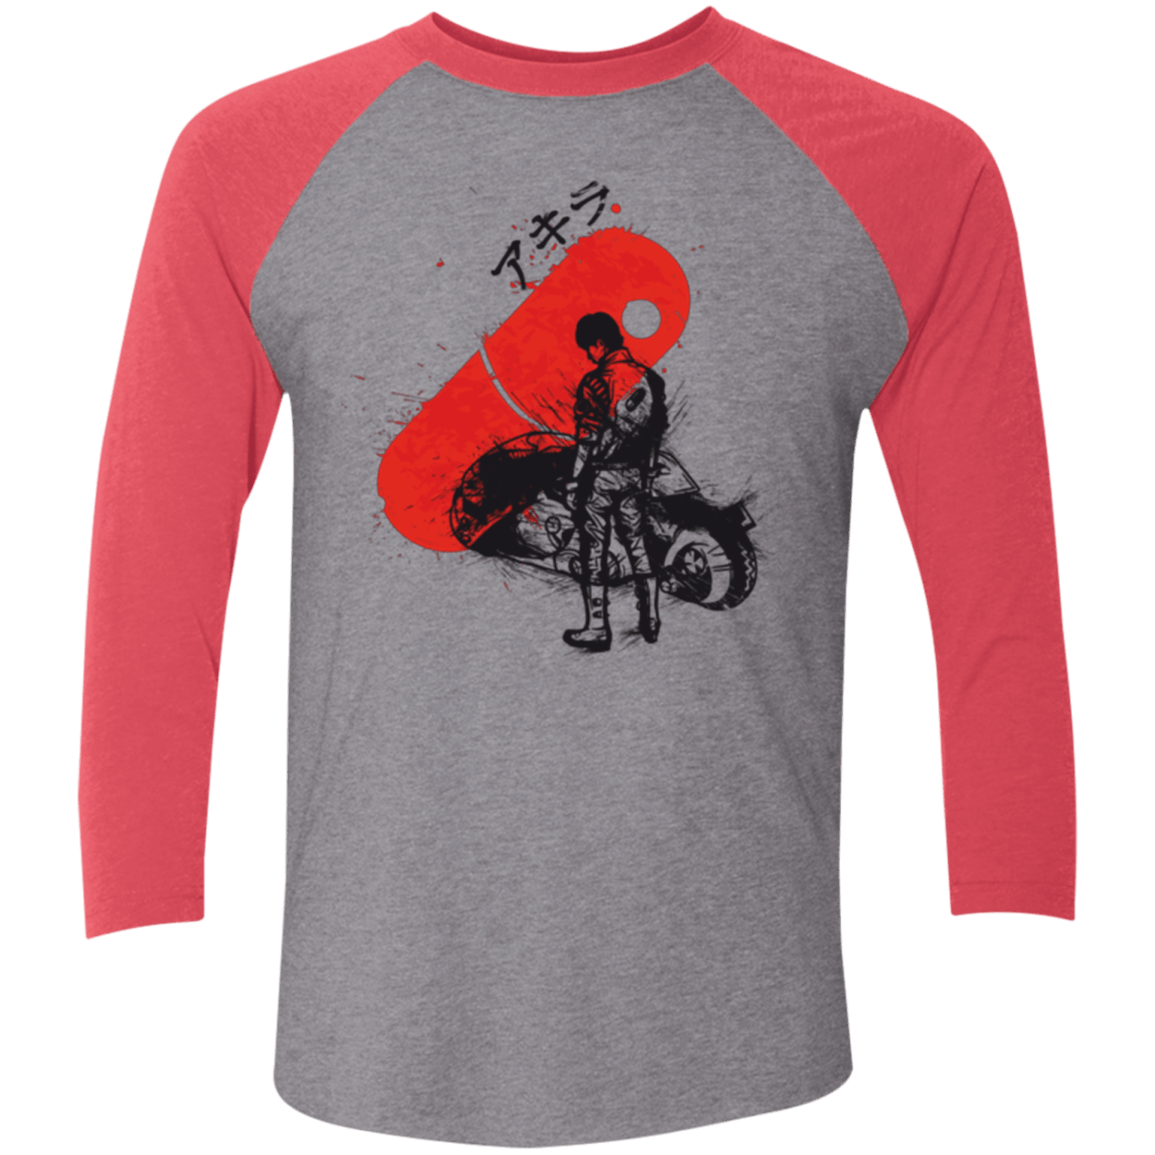 T-Shirts Premium Heather/ Vintage Red / X-Small RED SUN AKIRA Men's Triblend 3/4 Sleeve